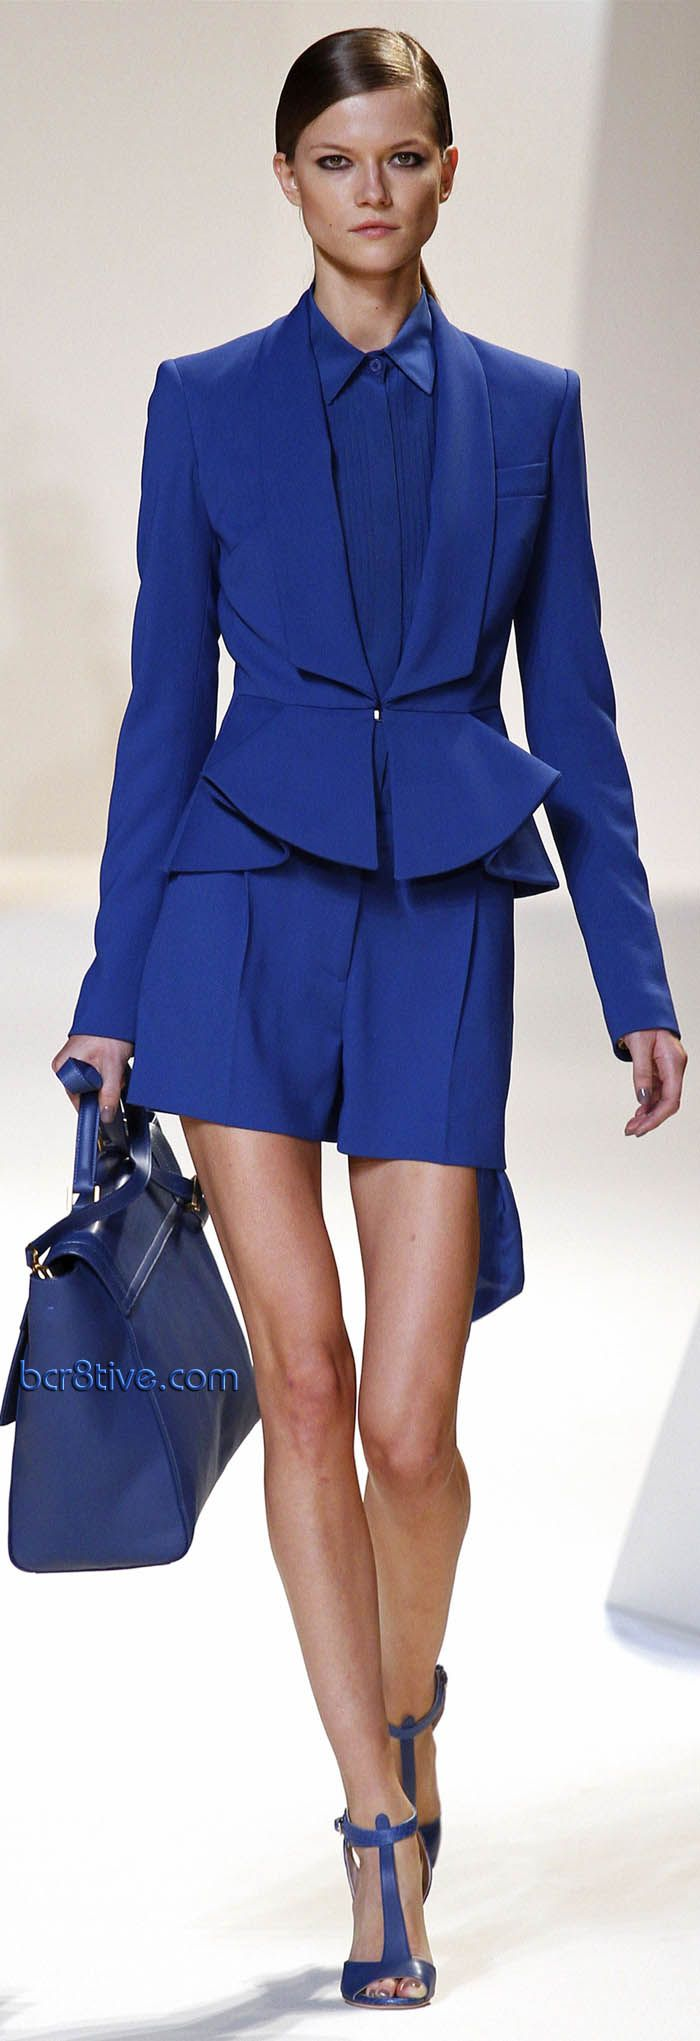 Elie Saab SS 2013 RtW  Updated Power Suit - All Business   PattyonSite